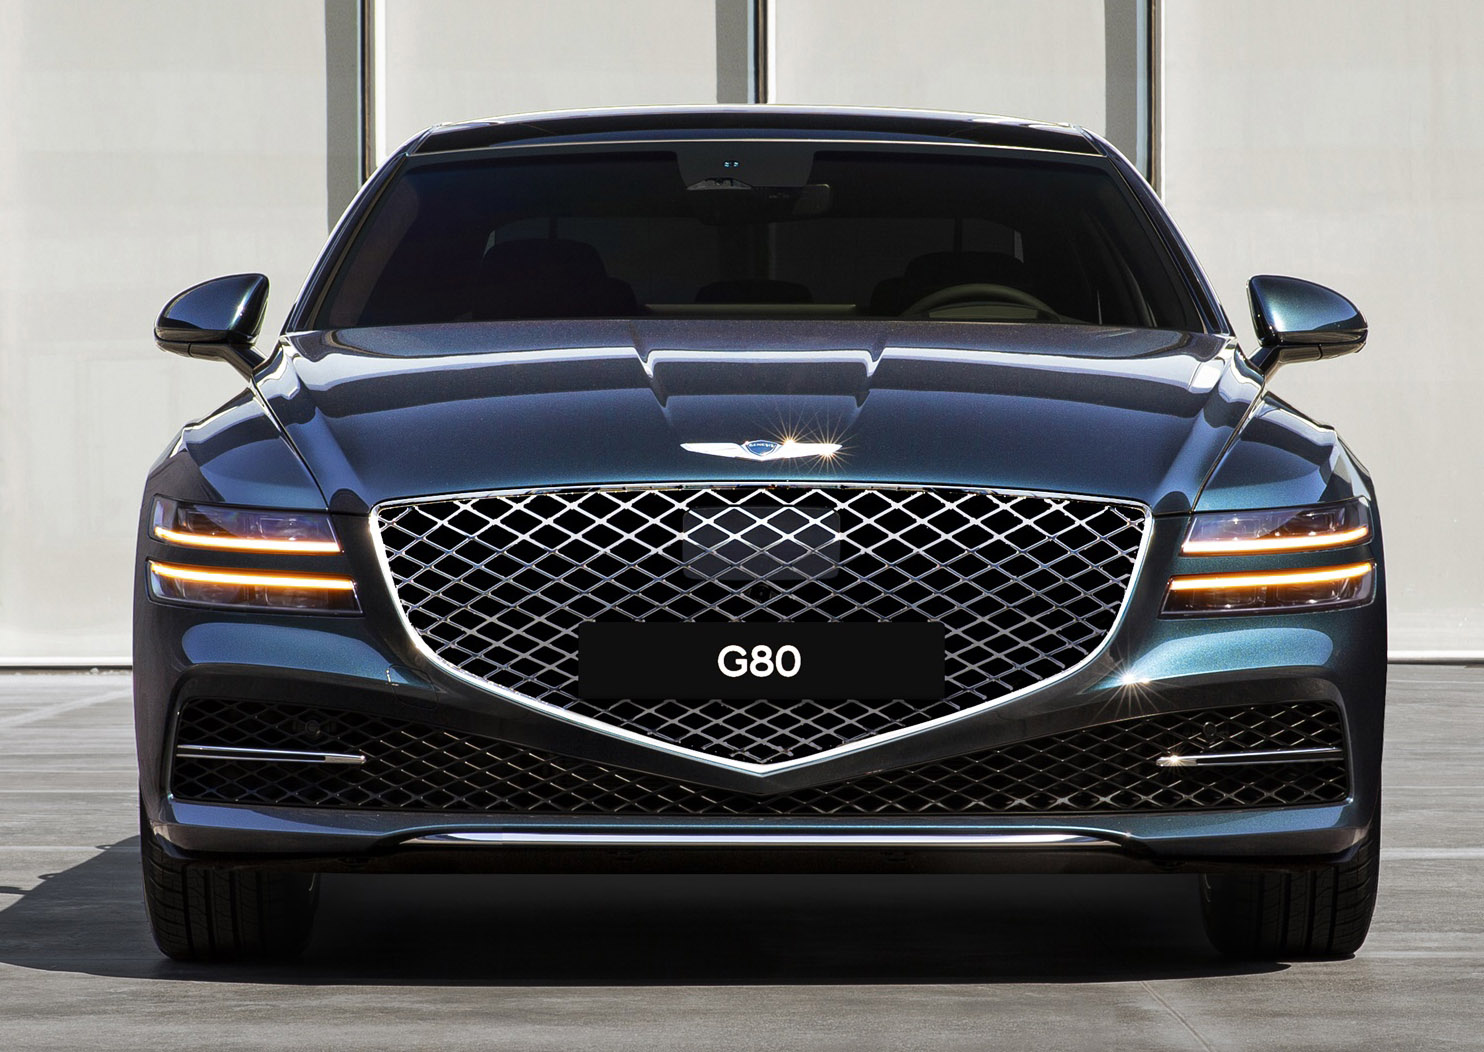 Genesis G80 drops V8, but makes up for it with stunning styling